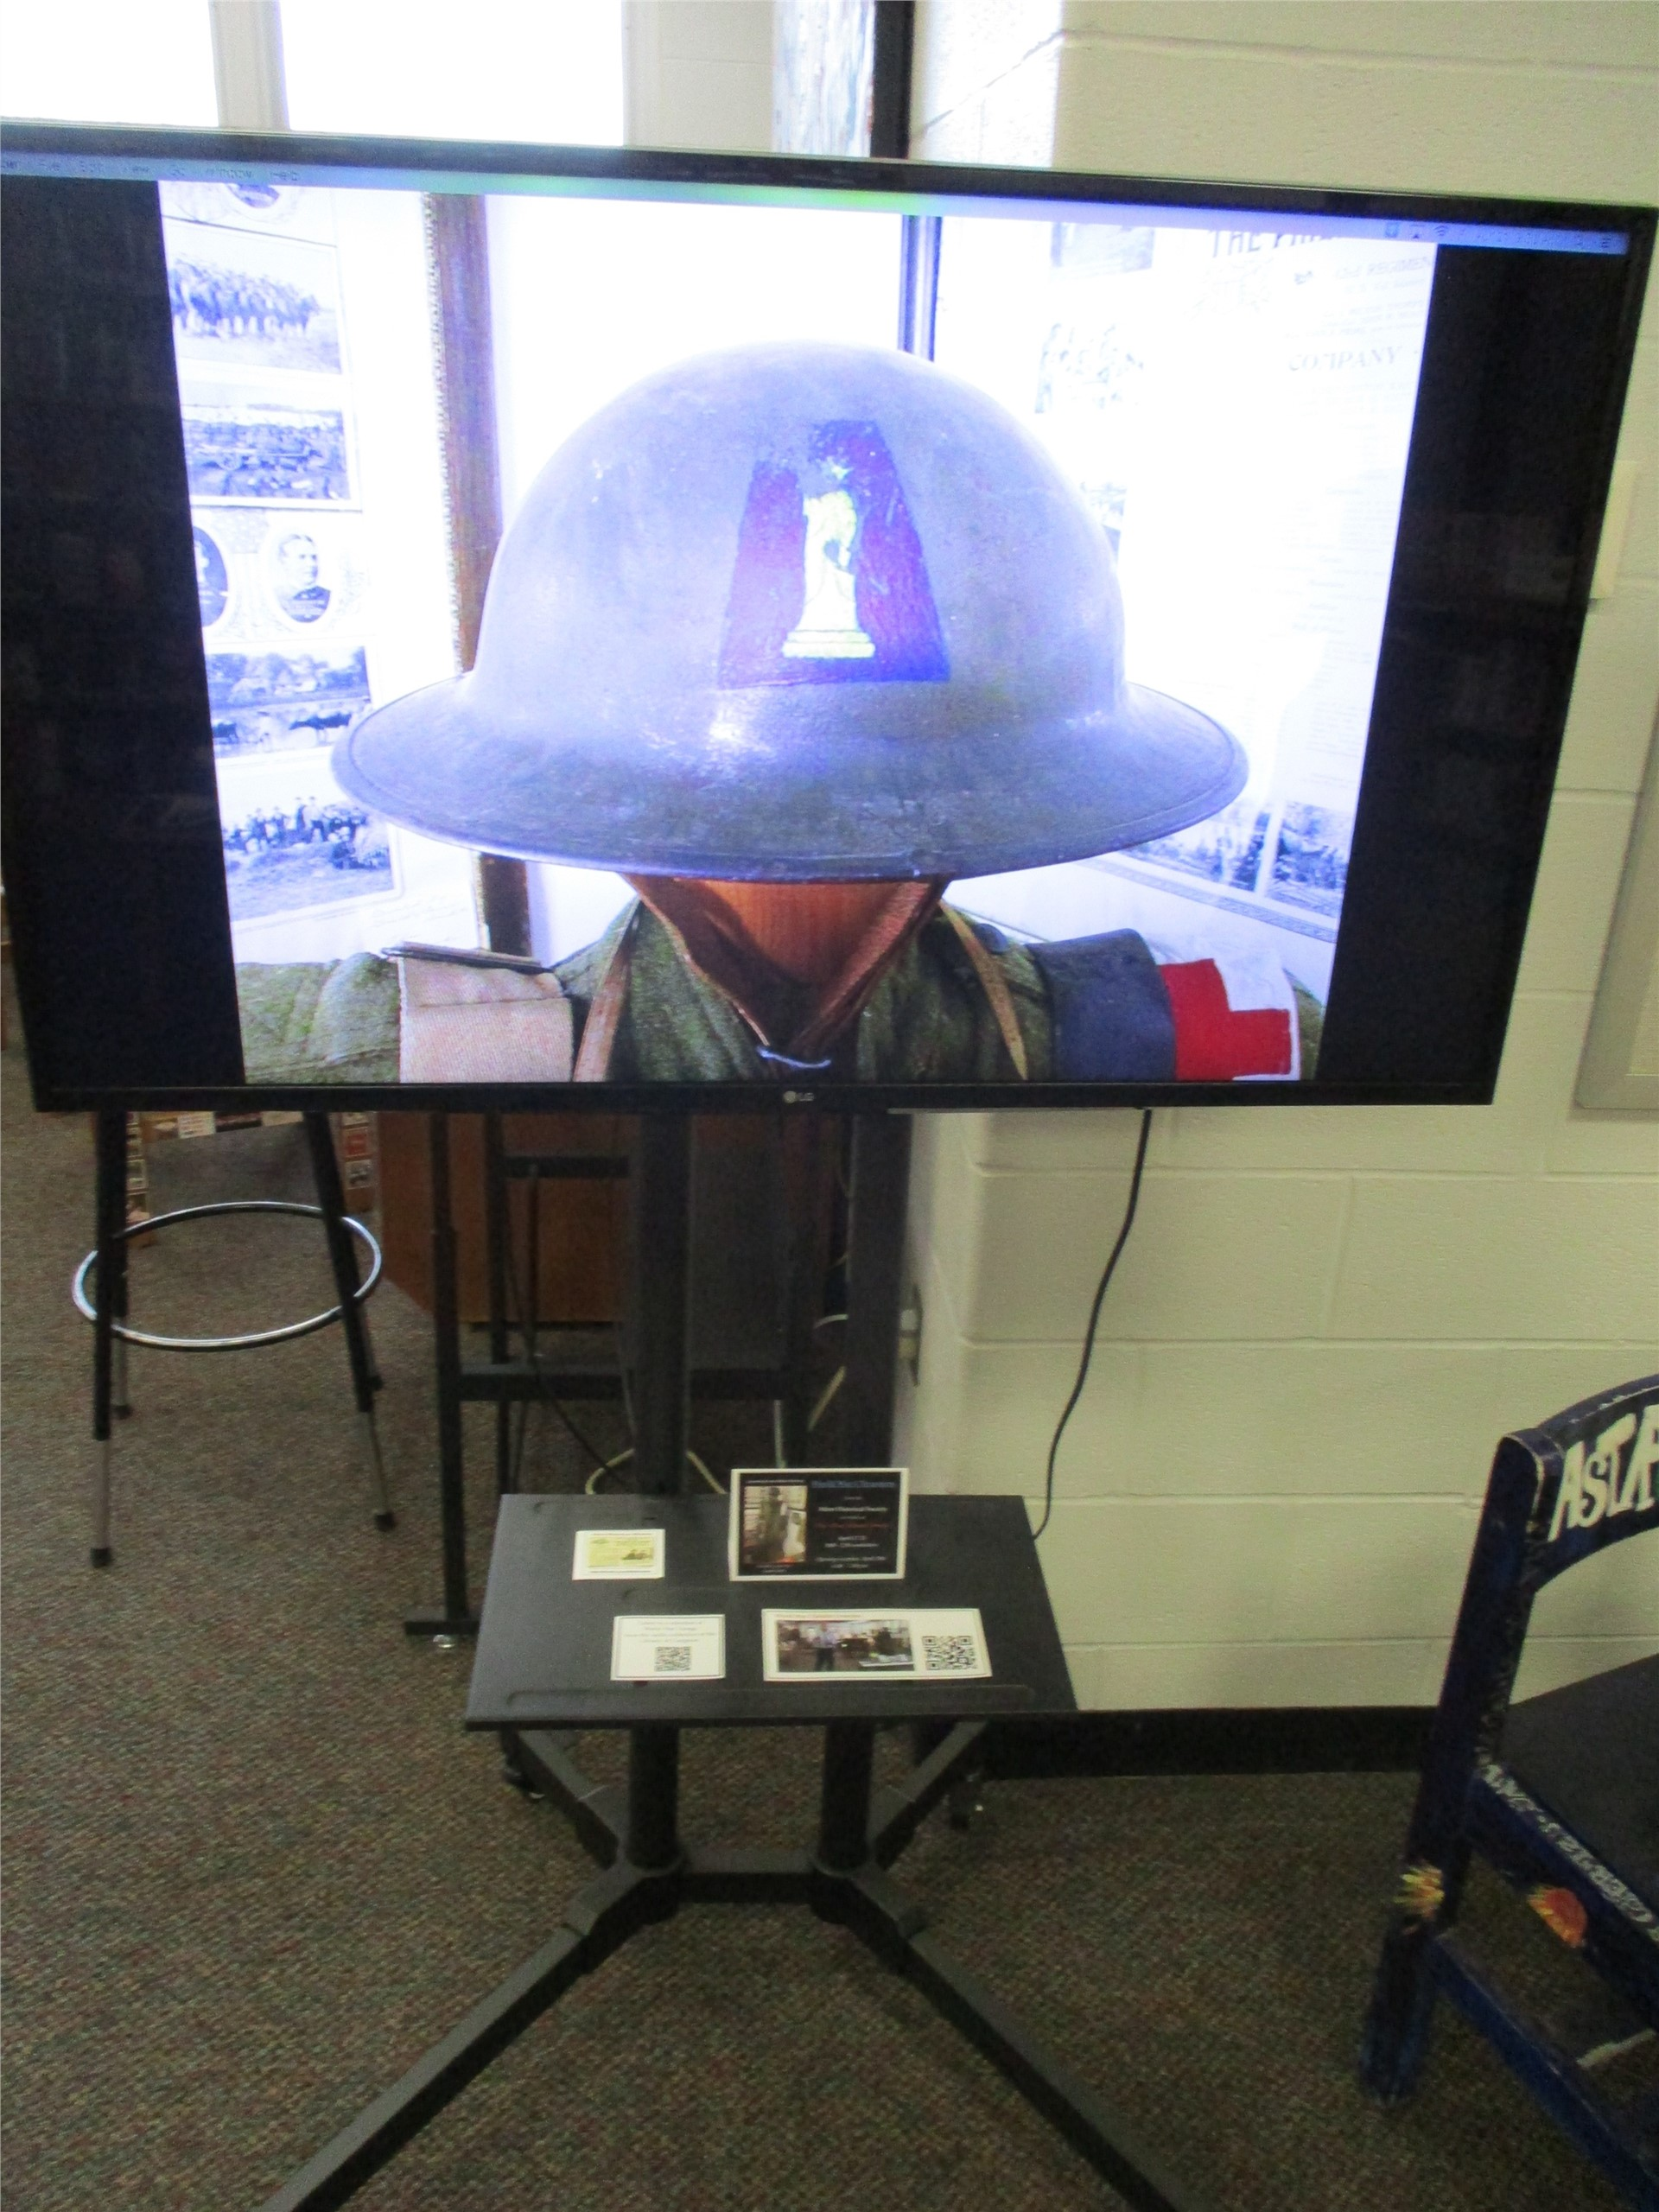 World War I exhibit: image of large screen slideshow display.